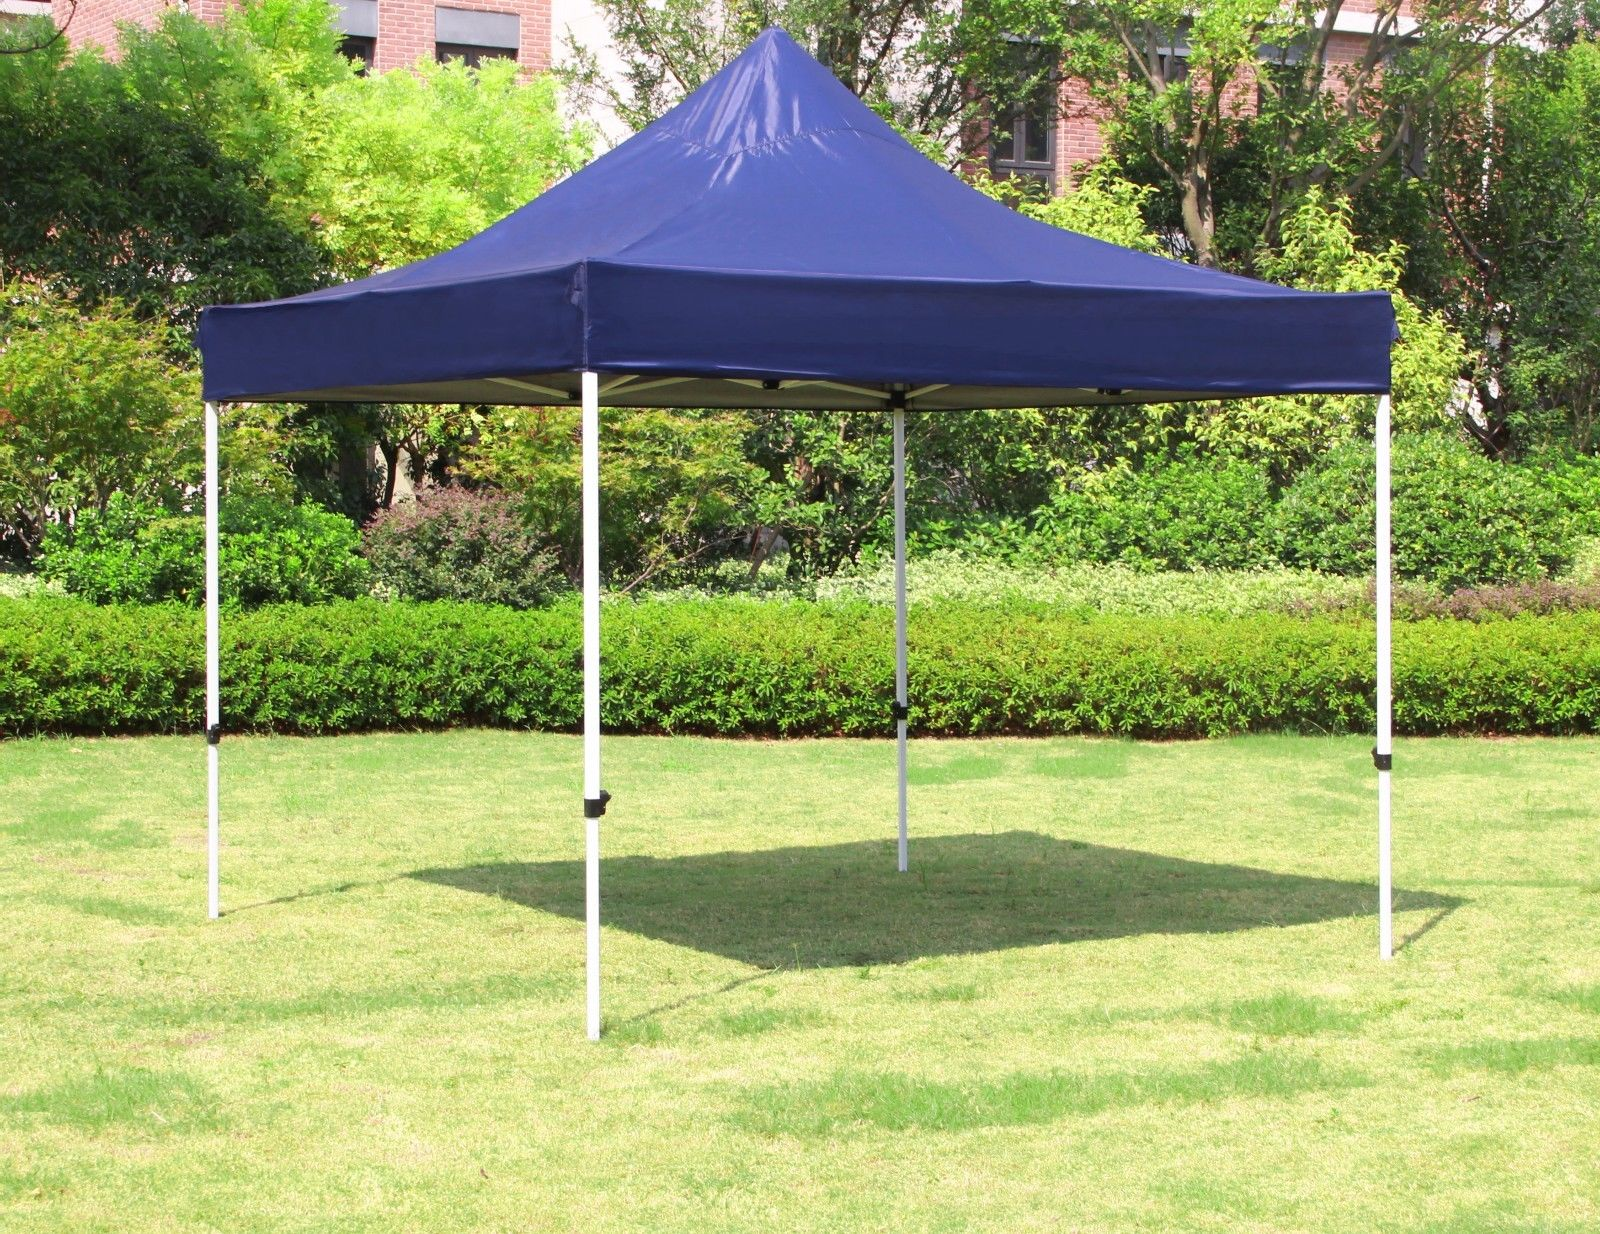 Outdoor-Garden-Gazebo-Portable-Shade-Folding-Canopy-Tent- : portable shade tent - memphite.com